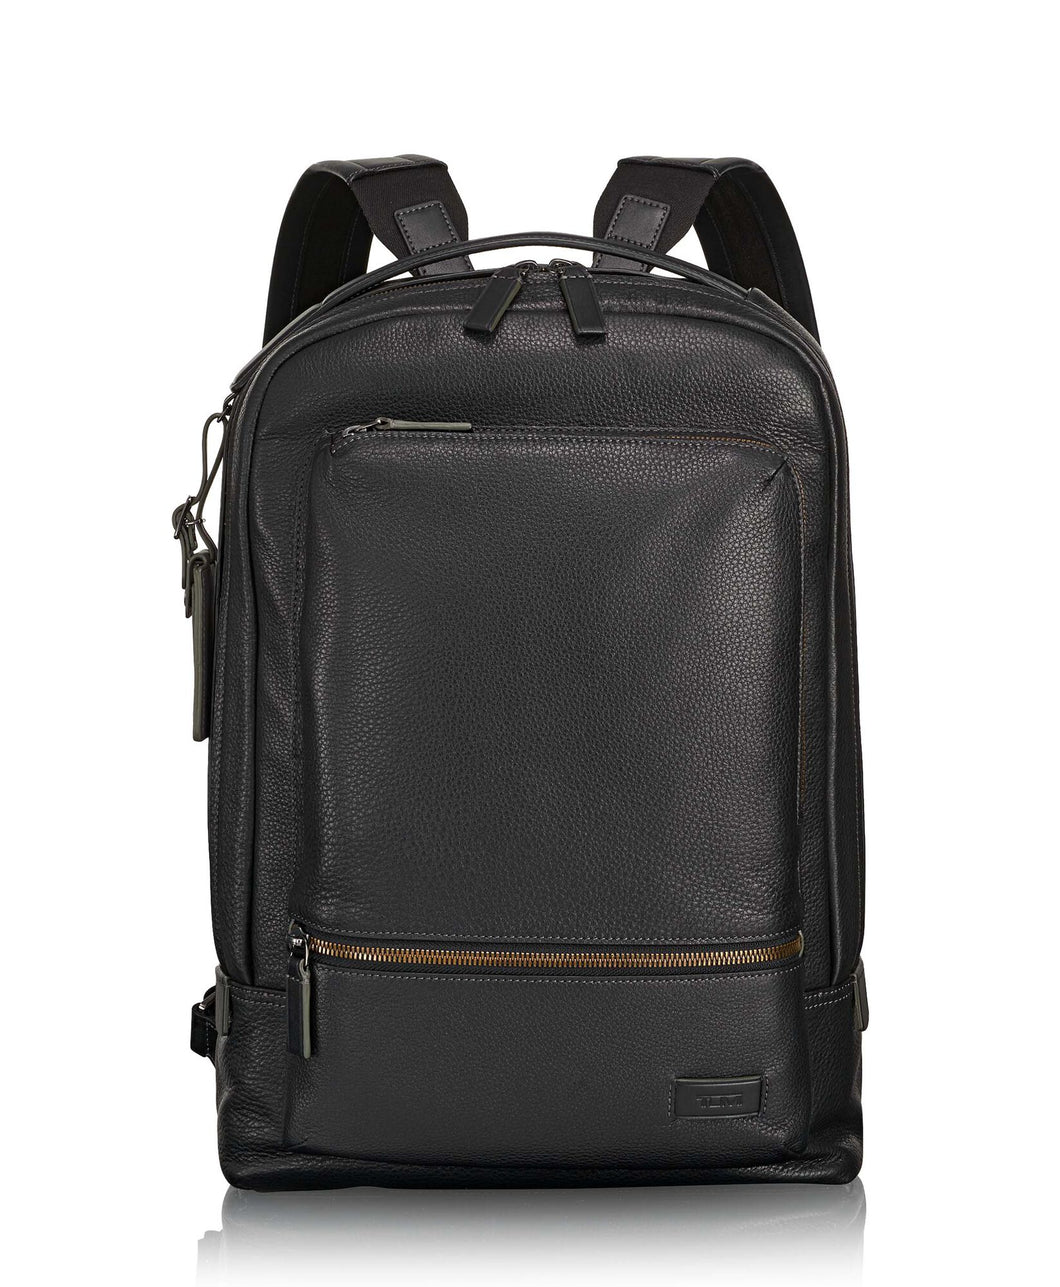 Harrison - Bates Leather Backpack (5940721320100)